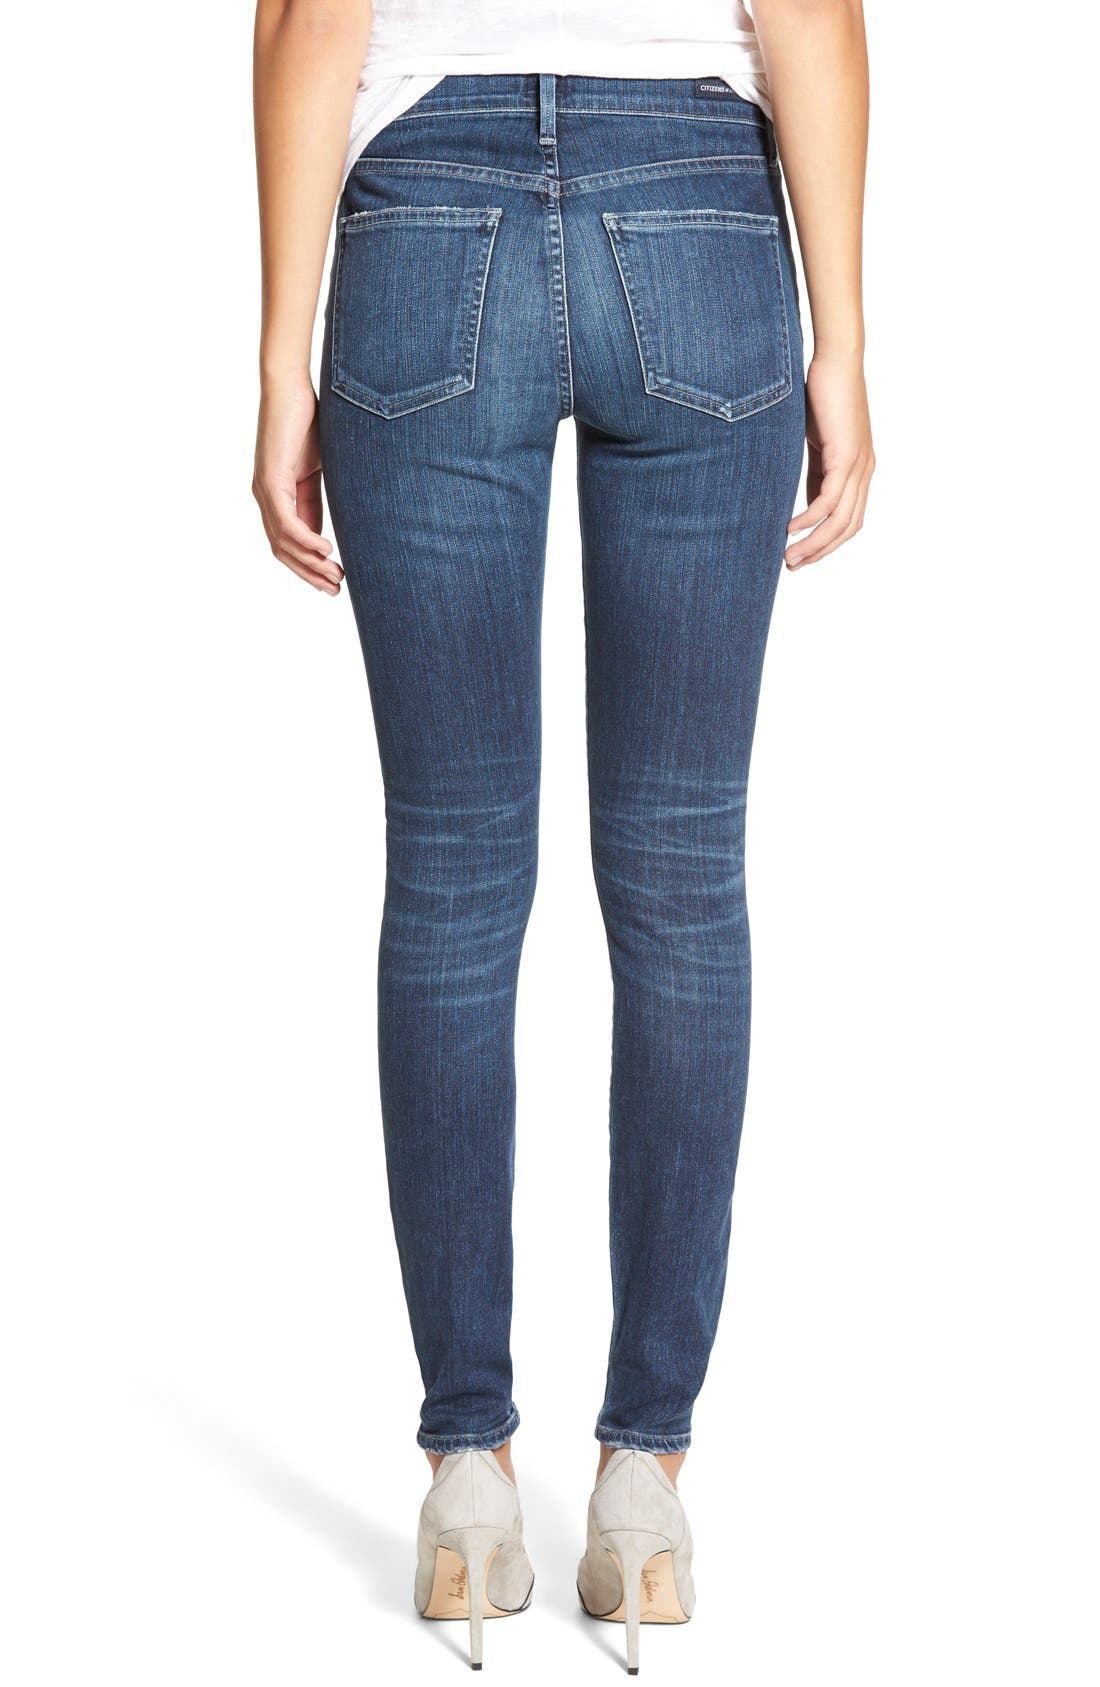 Rocket High Waist Skinny Jeans,                             Alternate thumbnail 2, color,                             Albion